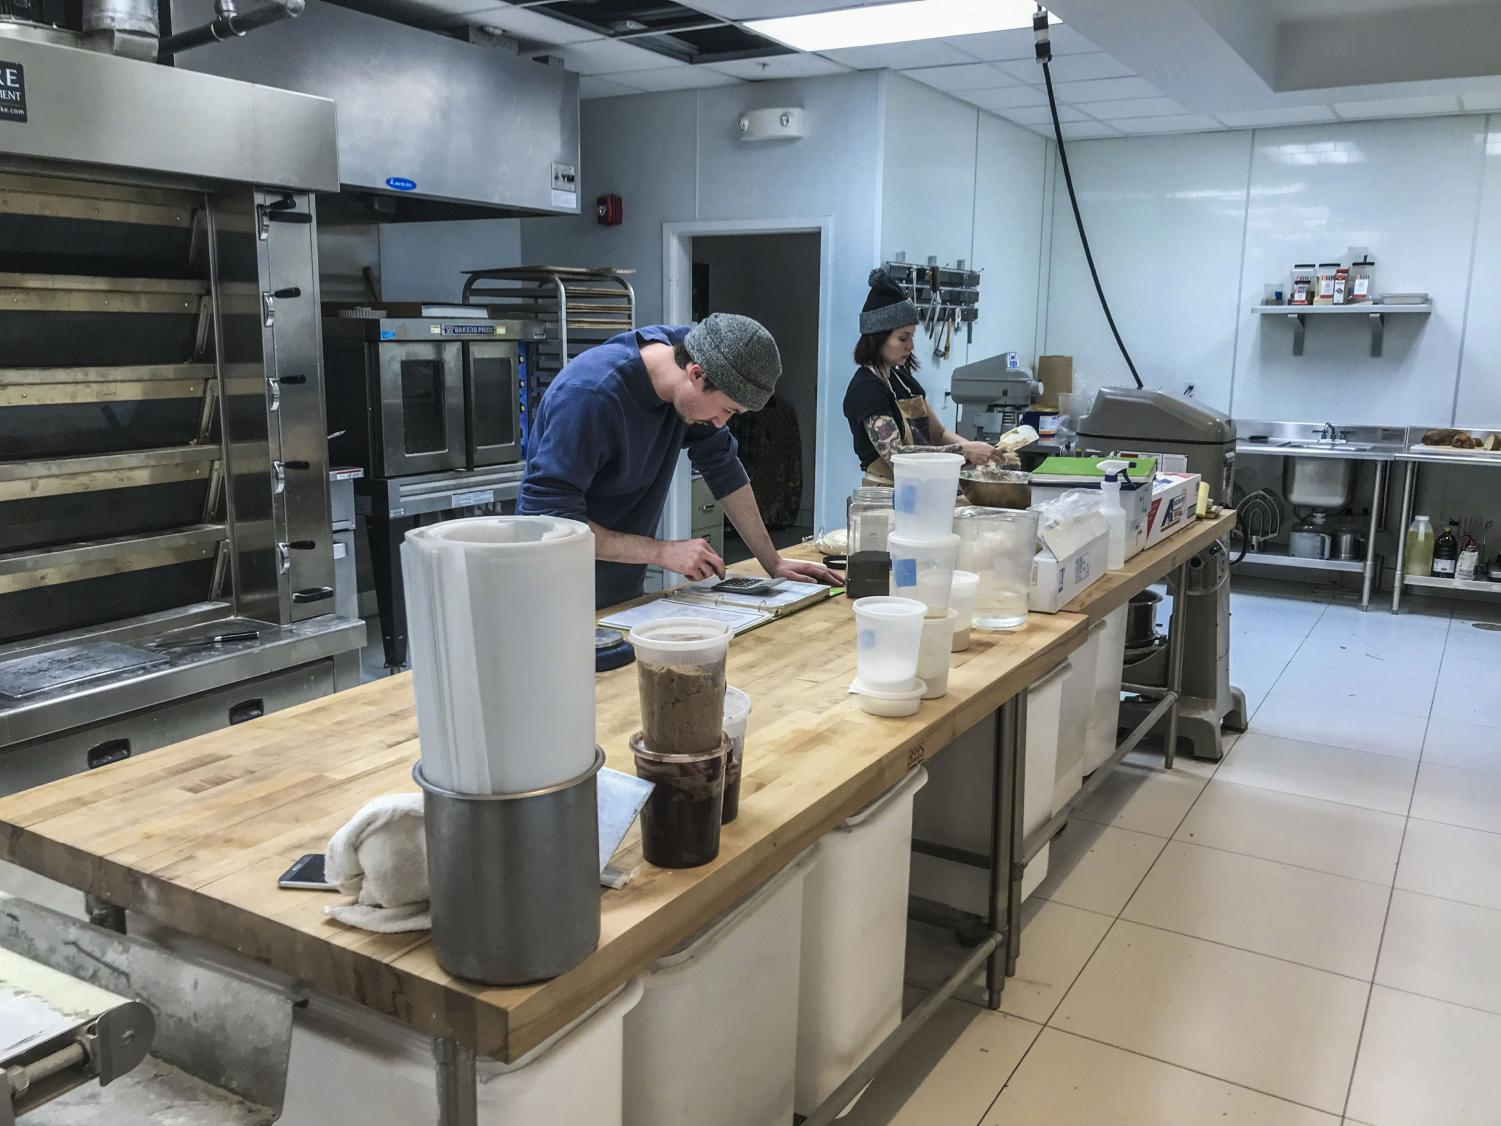 Fluffy Duck Cafe owner Ben Woods and baker Ange Lupica start baking at 2:30 a.m., at their location near the Cleveland Clinic.